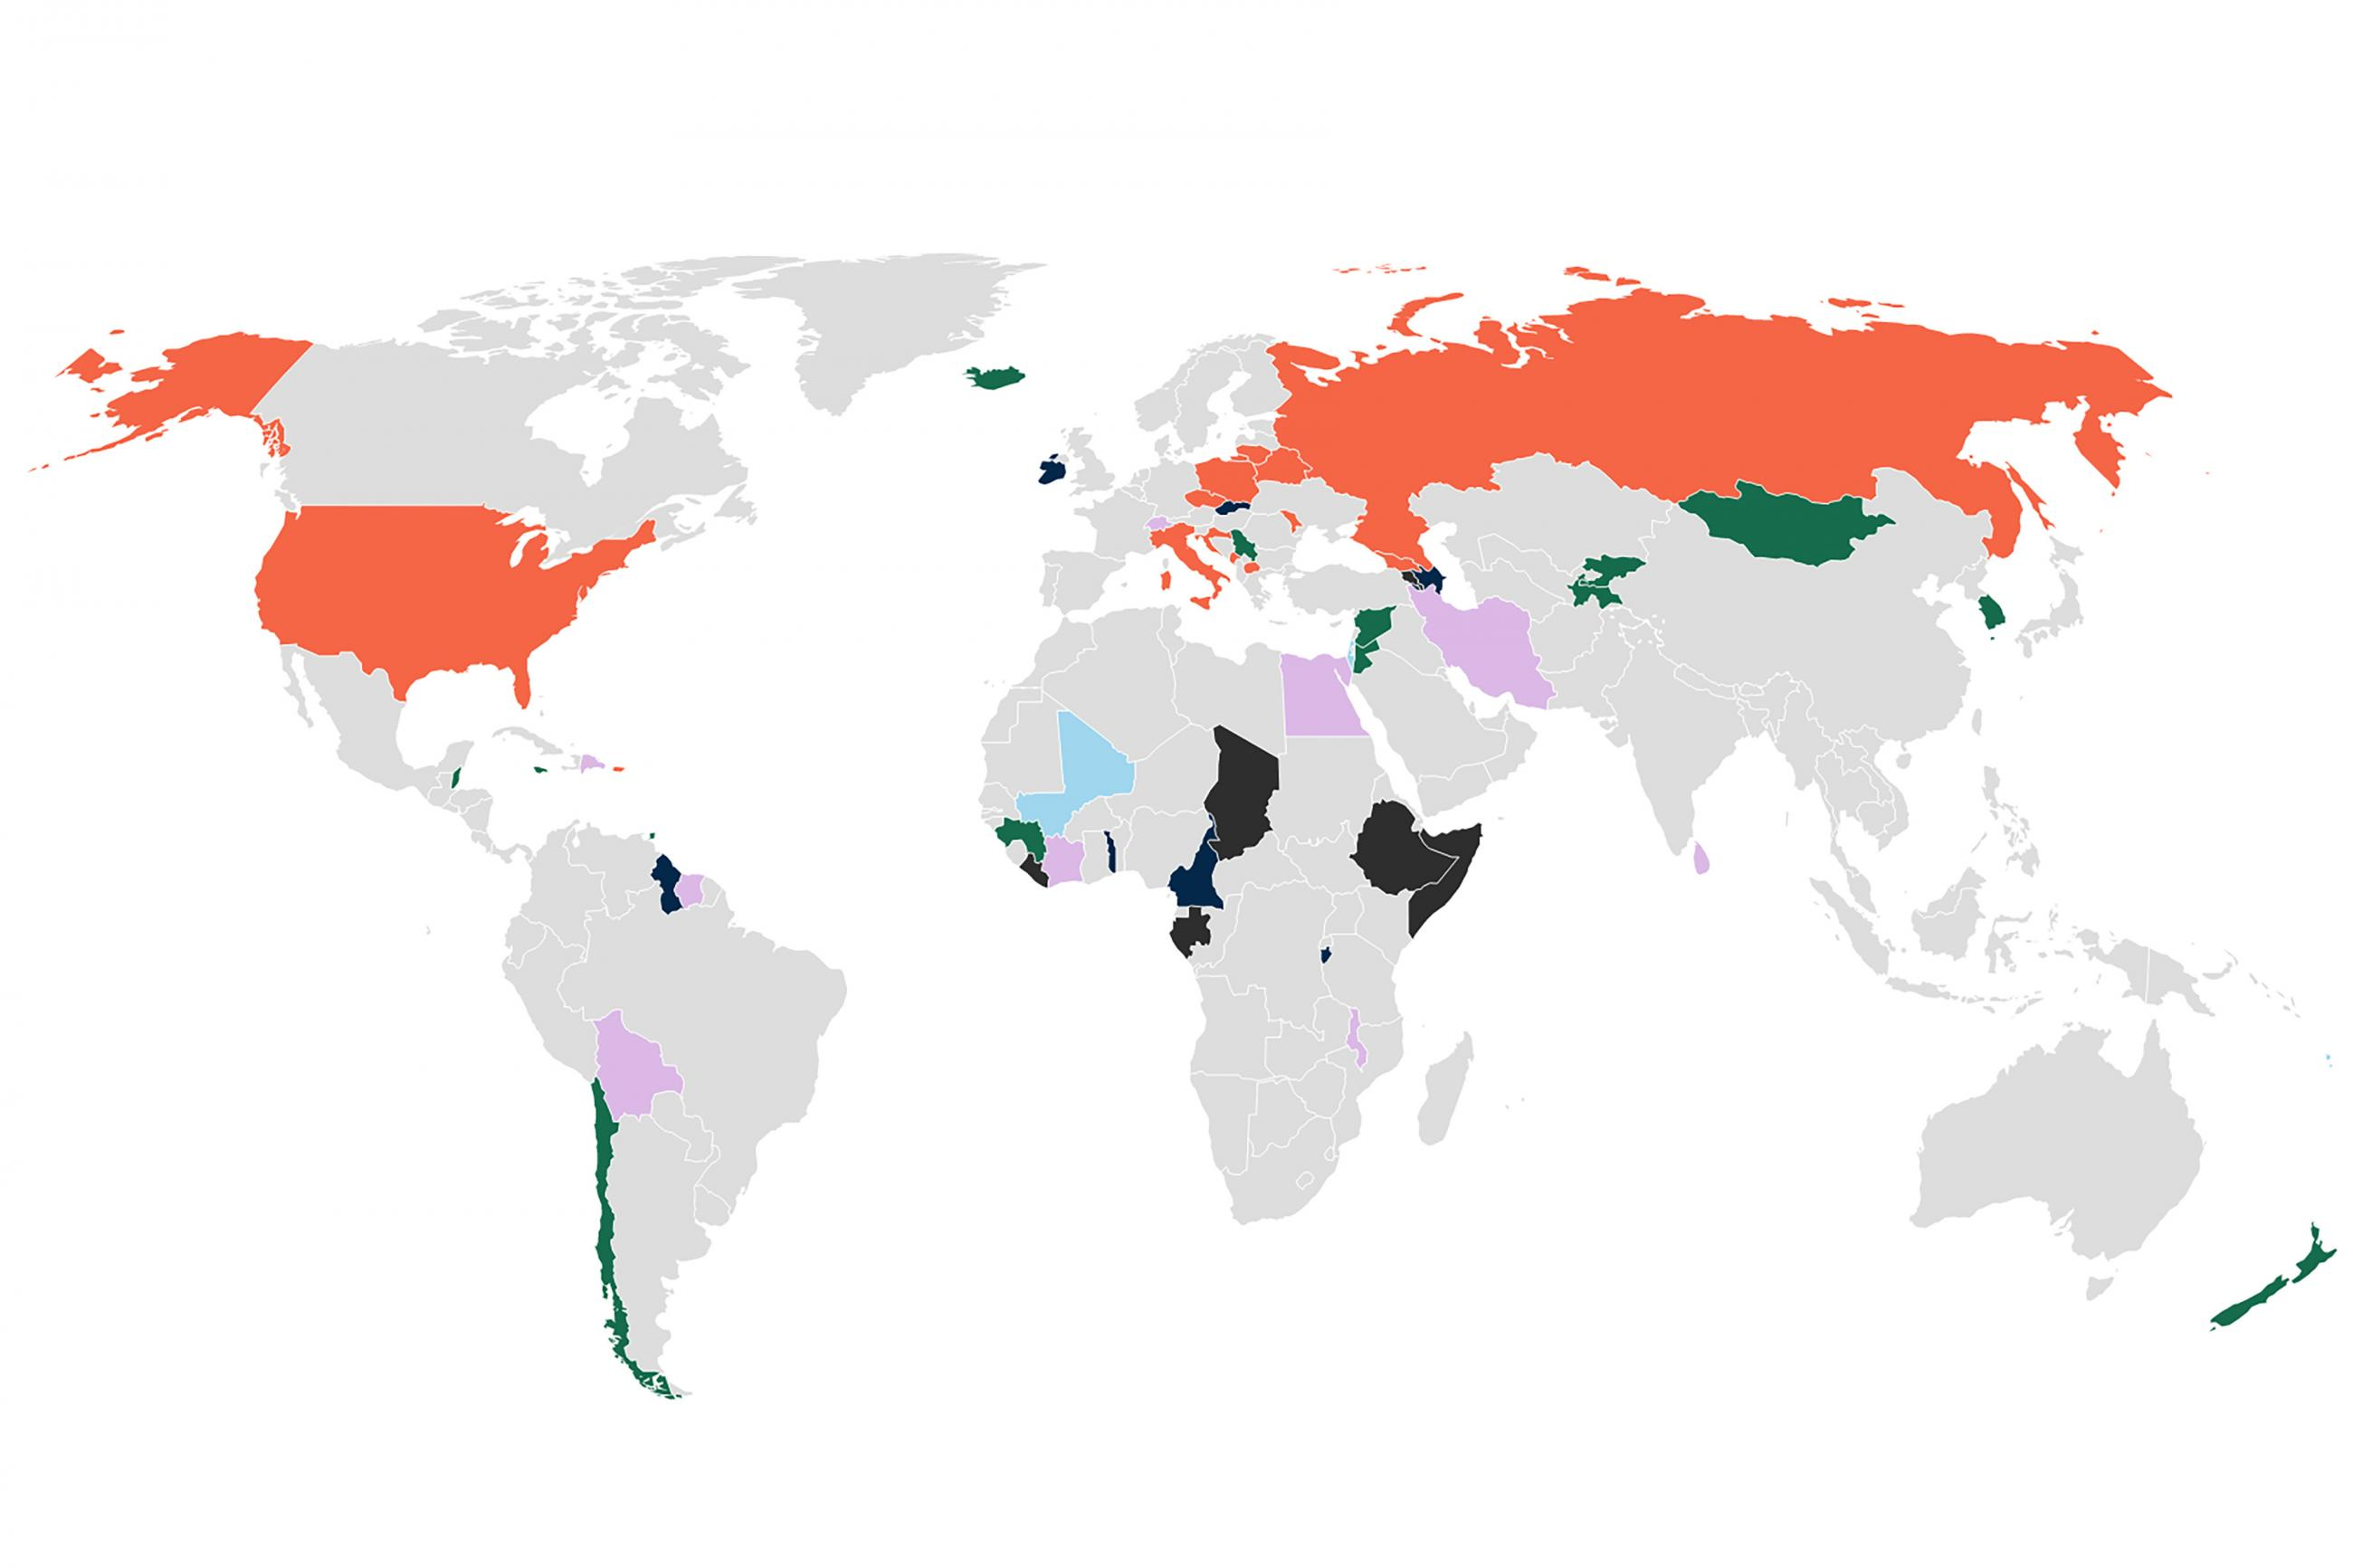 World map shows colors that correspond to the number of health security measures countries took during national elections in 2020.